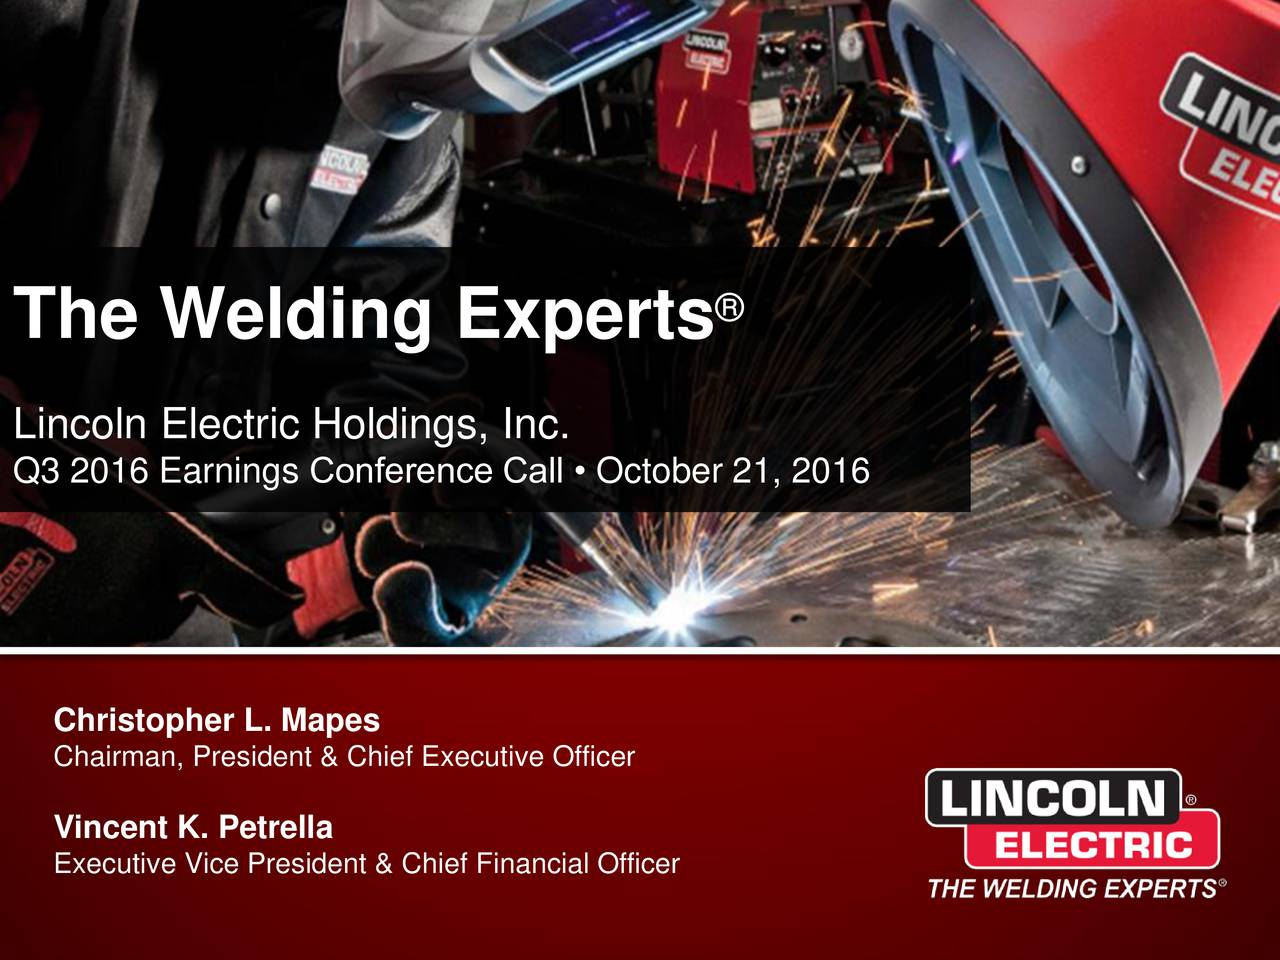 The Welding Experts Lincoln Electric Holdings, Inc. Q3 2016 Earnings Conference Call  October 21, 2016 Christopher L. Mapes Chairman, President & Chief Executive Officer Vincent K. Petrella Executive Vice President & Chief Financial Officer